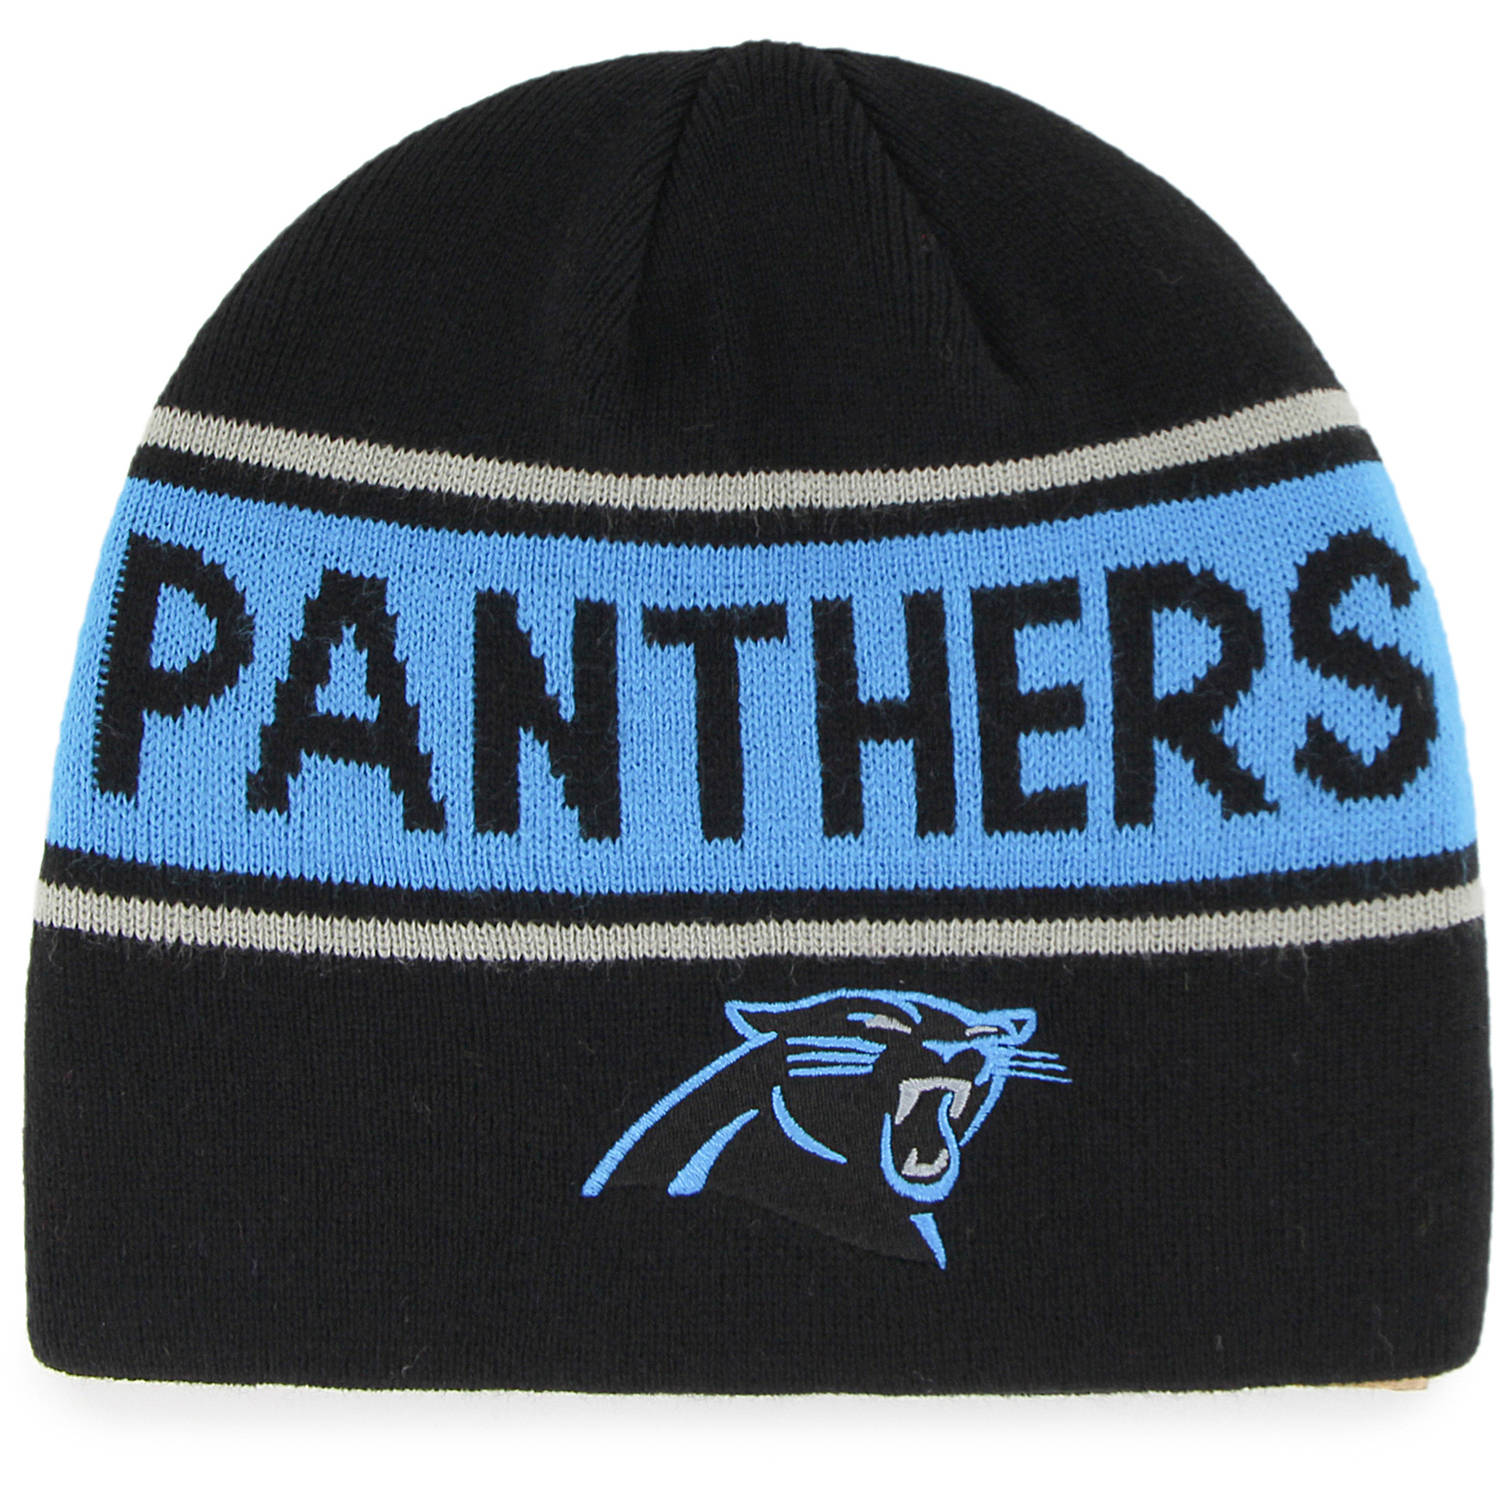 b088d7b85 NFL Carolina Panthers Basic Cap Hat by Fan Favorite - Walmart.com